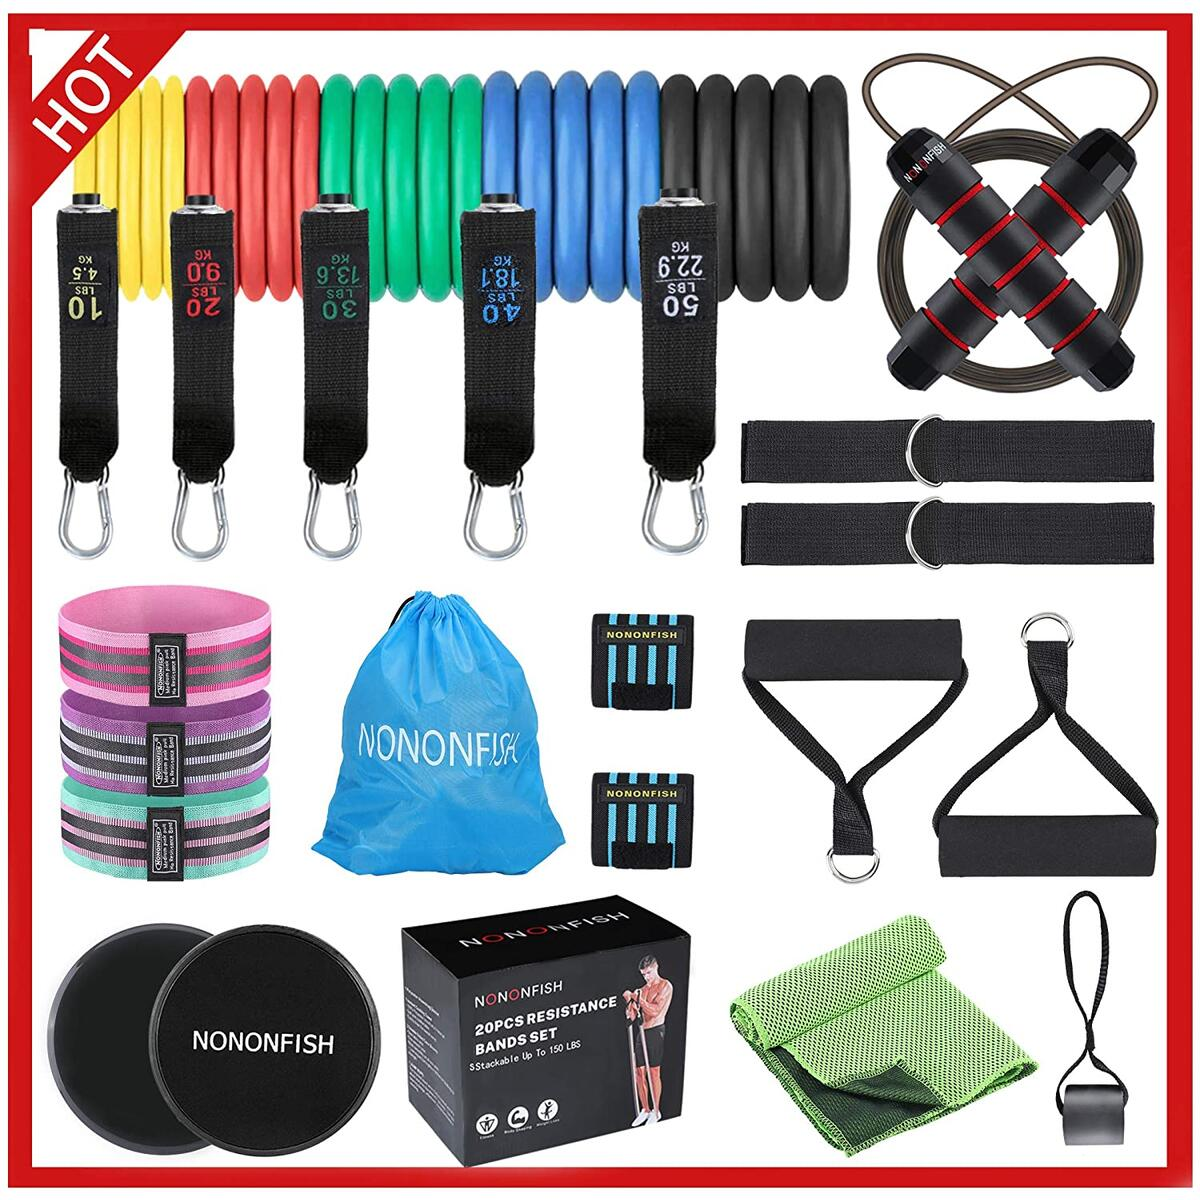 20 piece elastic bands for exercise ,resistance bands with handles set ,workout bands resistance for women /man,fit Strength Training, Physical Therapy, Yoga, Pilates.